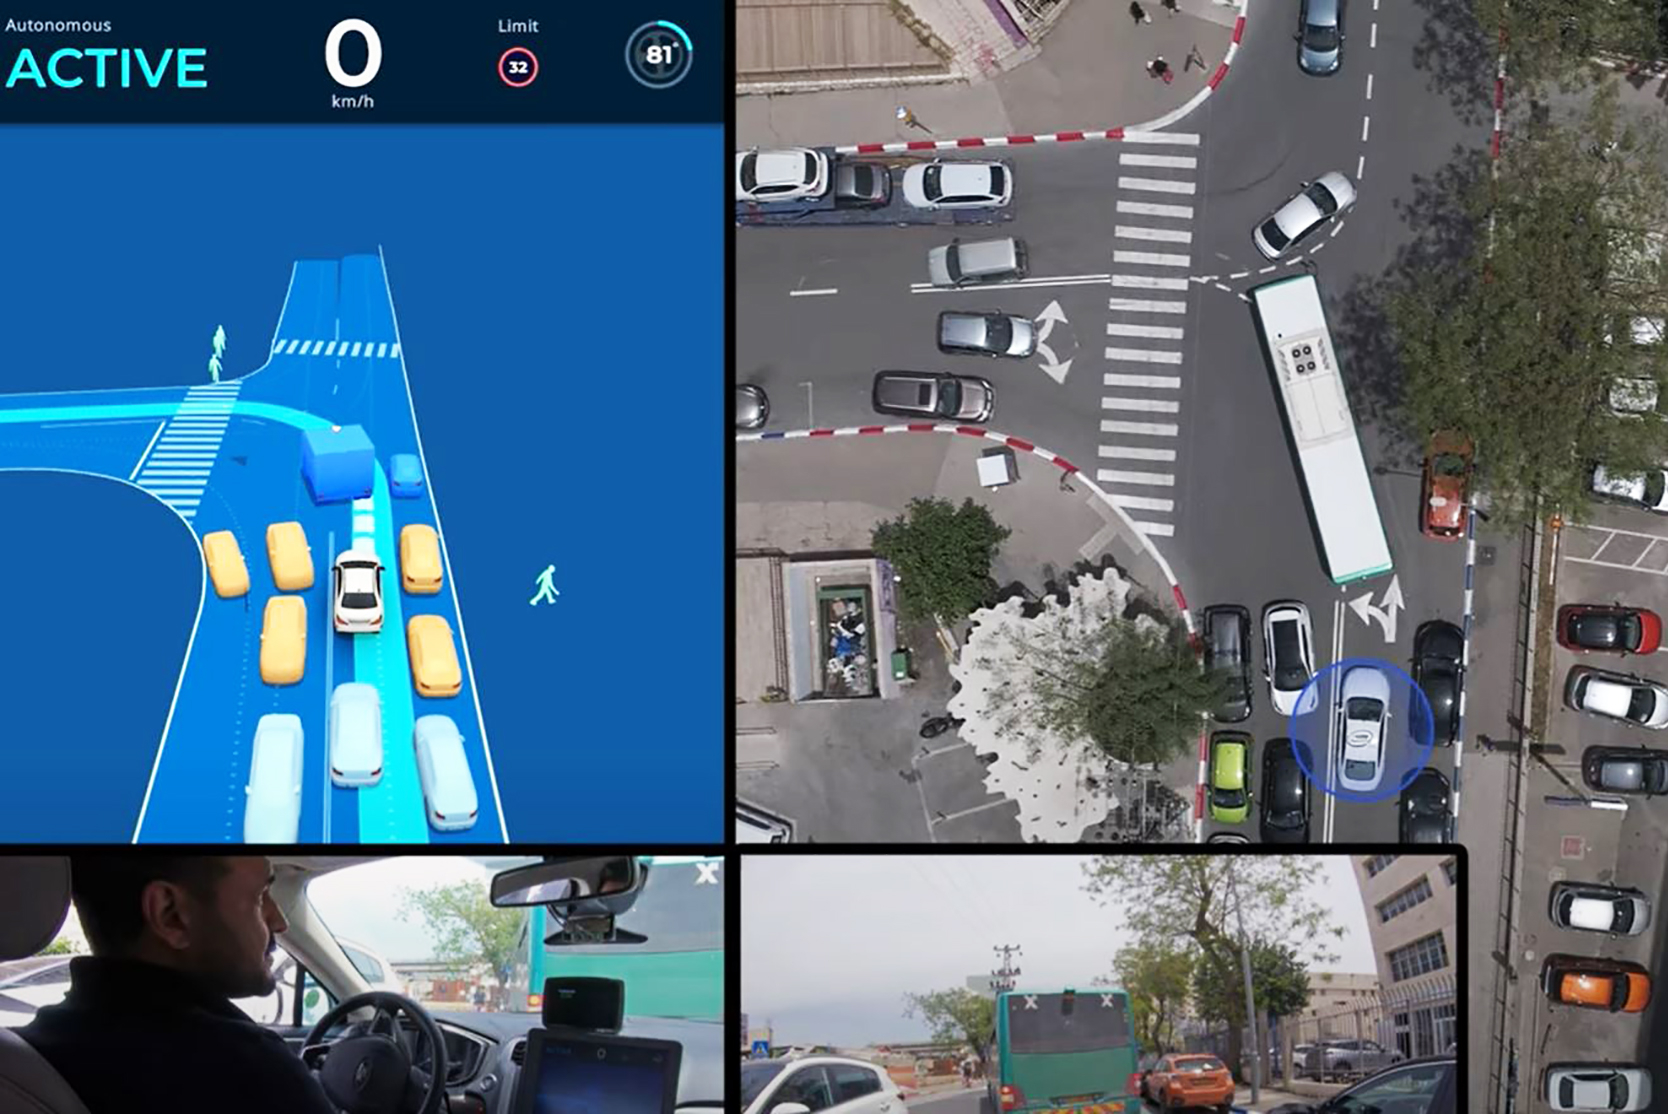 Intel's Mobileye unit is testing autonomous vehicles in Israel